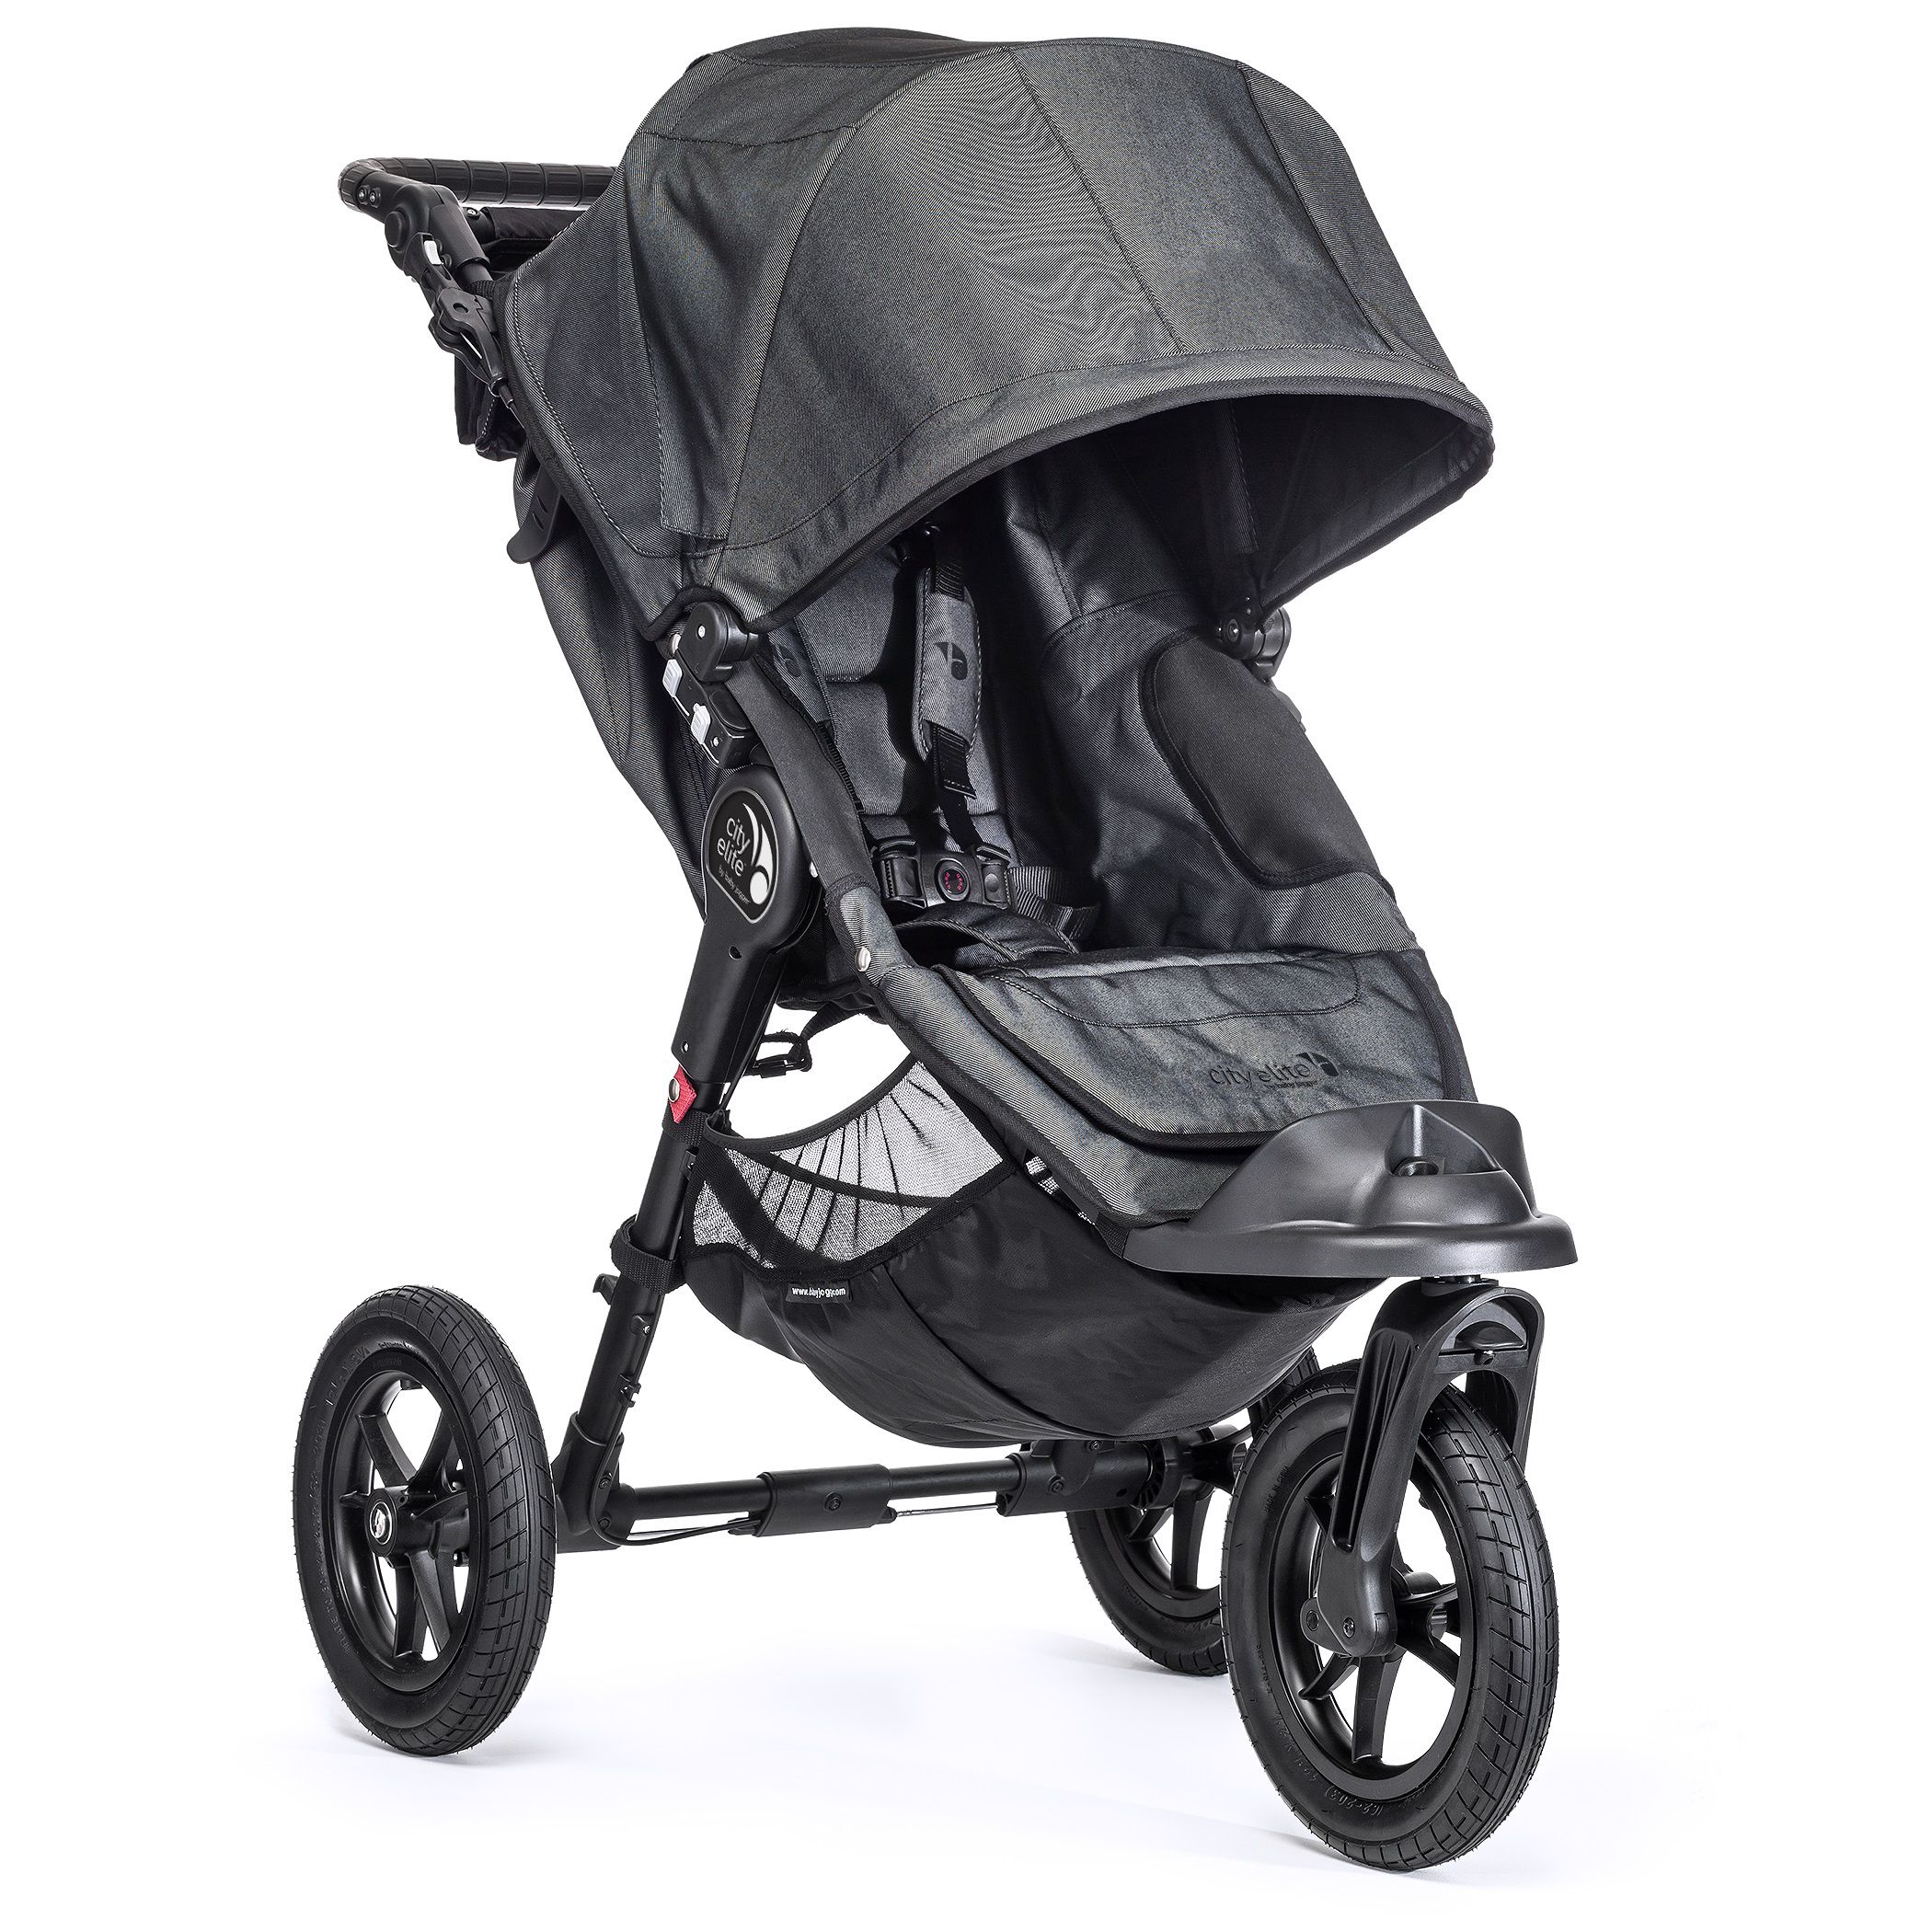 Take your baby on a smooth ride in Baby Jogger City Mini Zip Stroller offered by us City Mini Zip is pact in size with fortable seat functionality